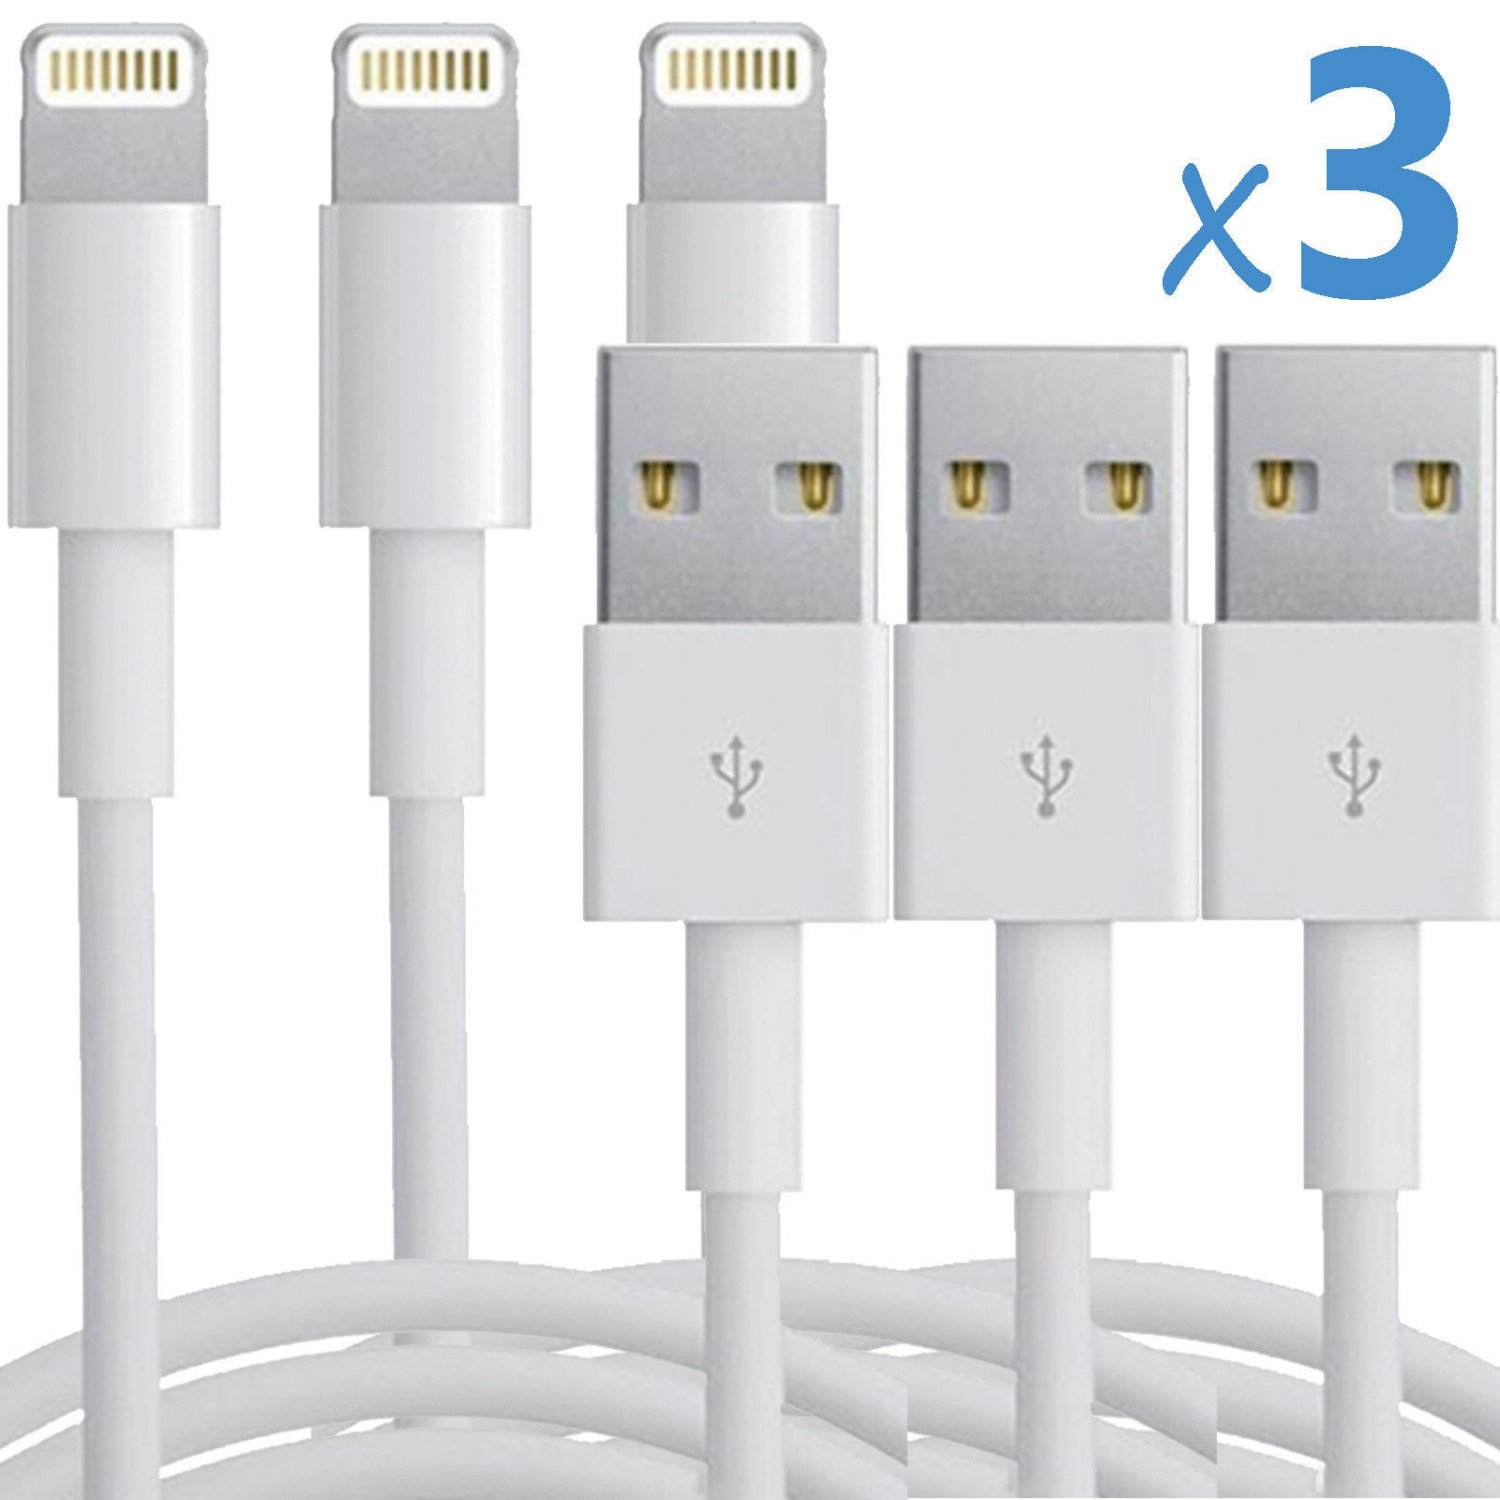 3x 8 Pin USB Data Sync Charger Cable Cord for iPhone 5 5S 5C iPod Touch 5 Nano 7